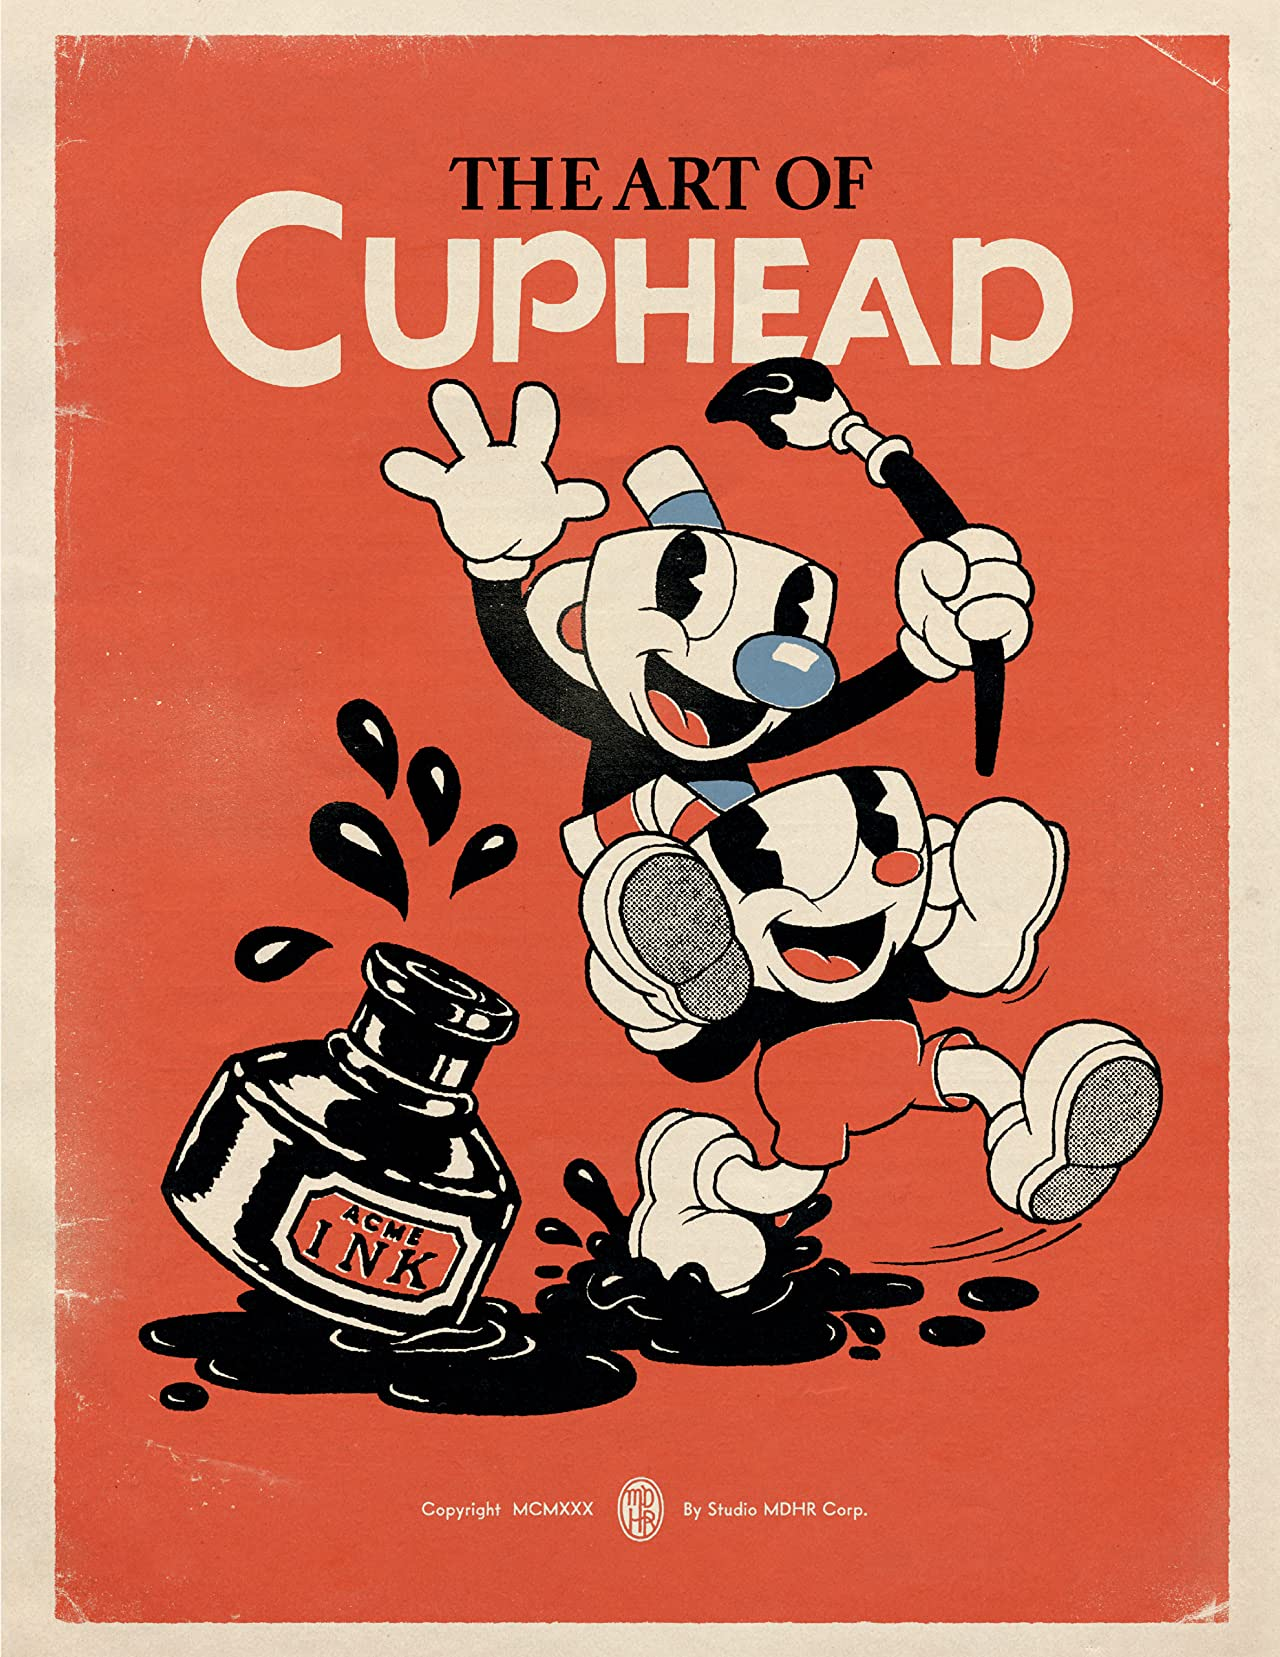 The Art of Cuphead